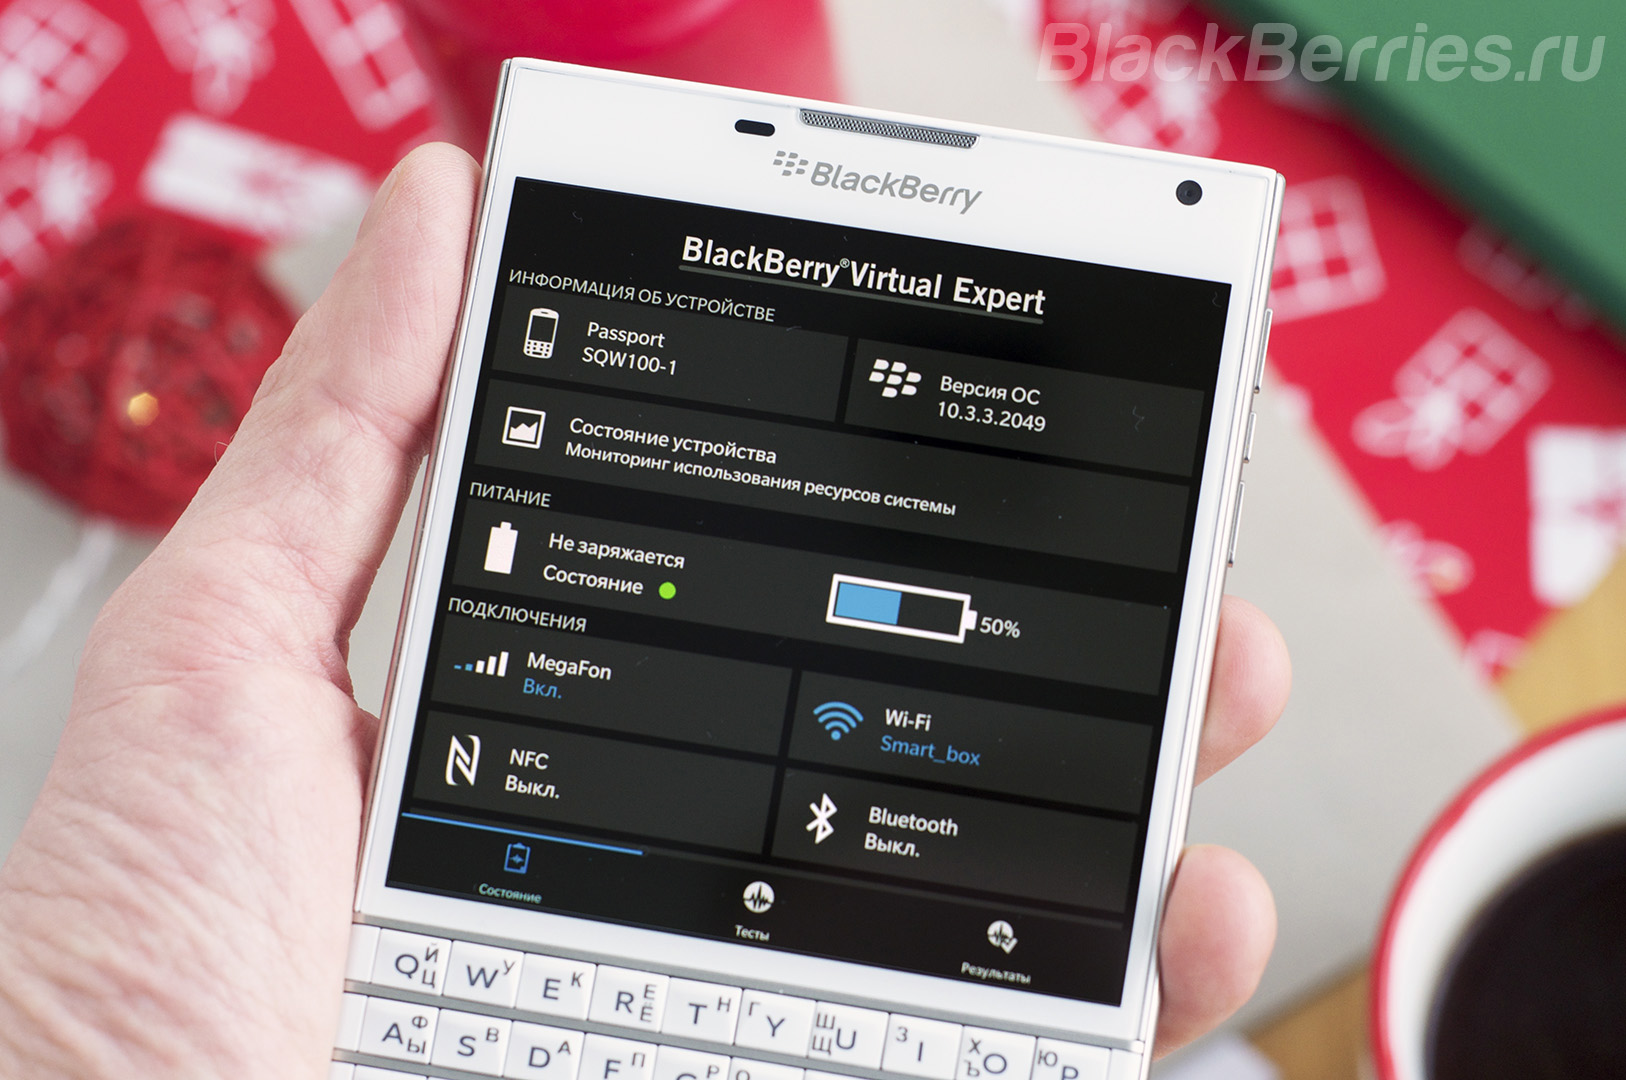 blackberry-1033-14